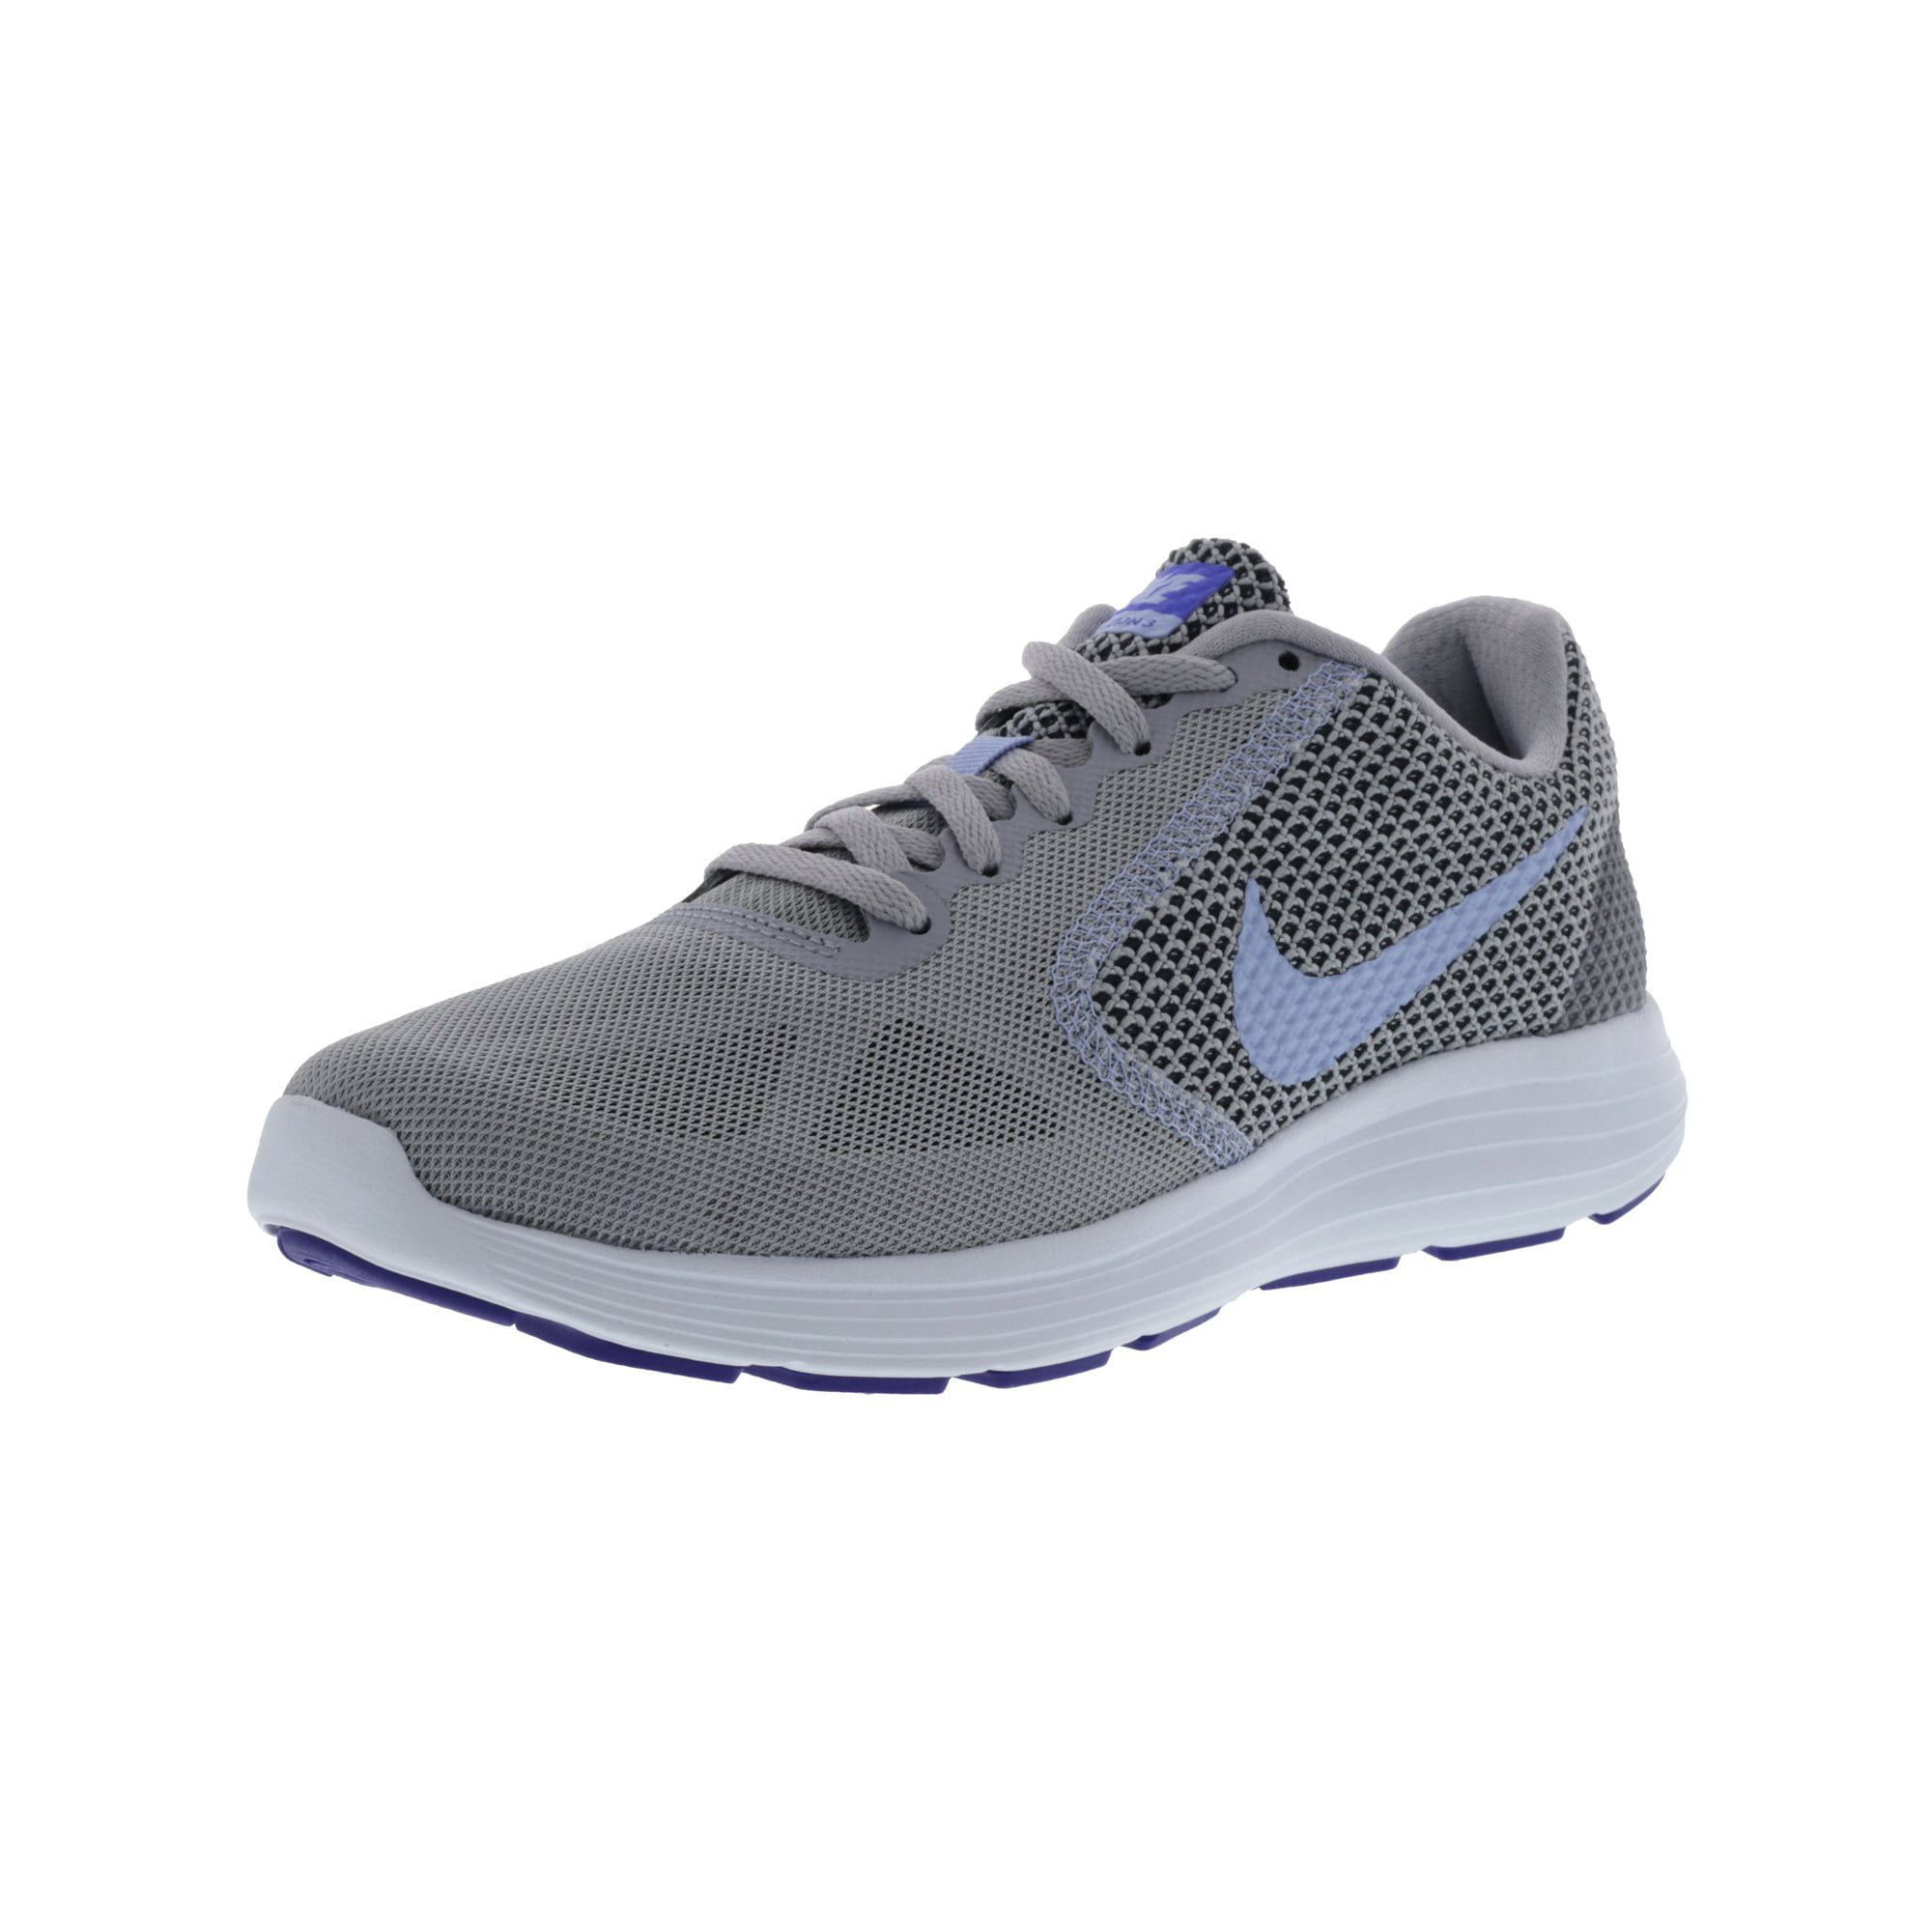 Denso gris Accesorios  Nike Women's Revolution 3 Wolf Grey / Aluminum Black Ankle-High Fabric Running  Shoe - 8M | Walmart Canada